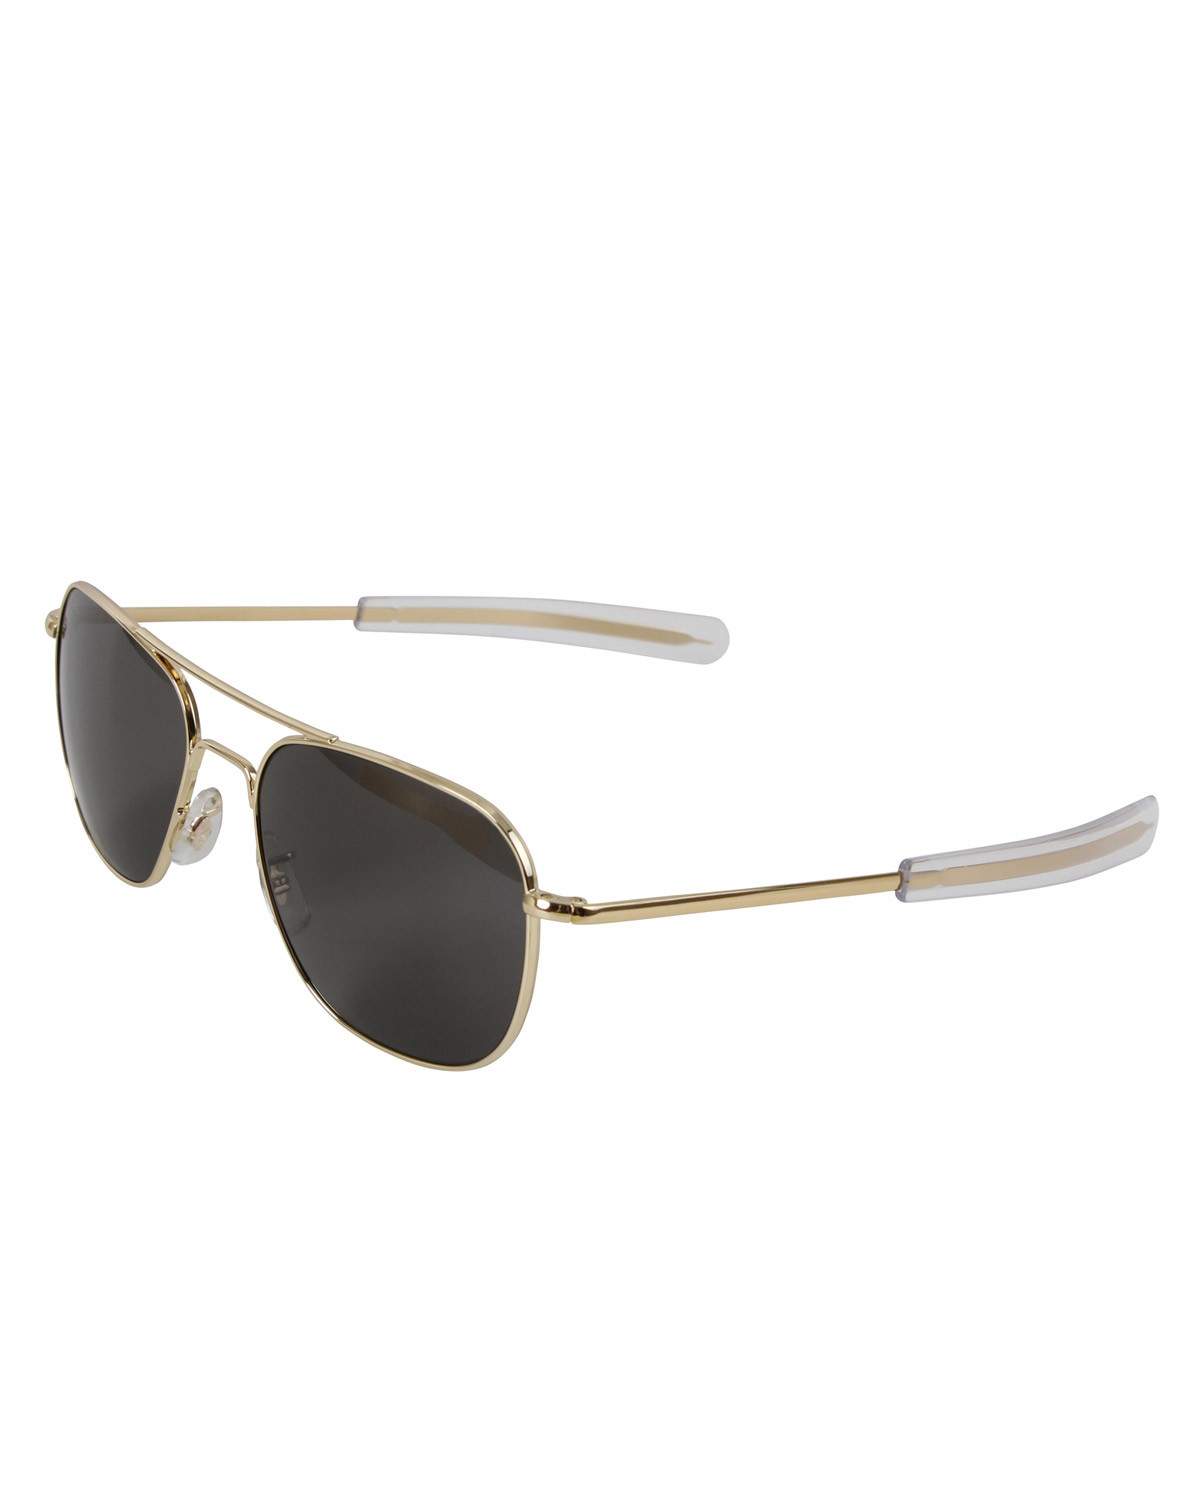 Rothco Pilots Solglasögon American Optical Original 52MM (Gold w. Grey Lens, 52)